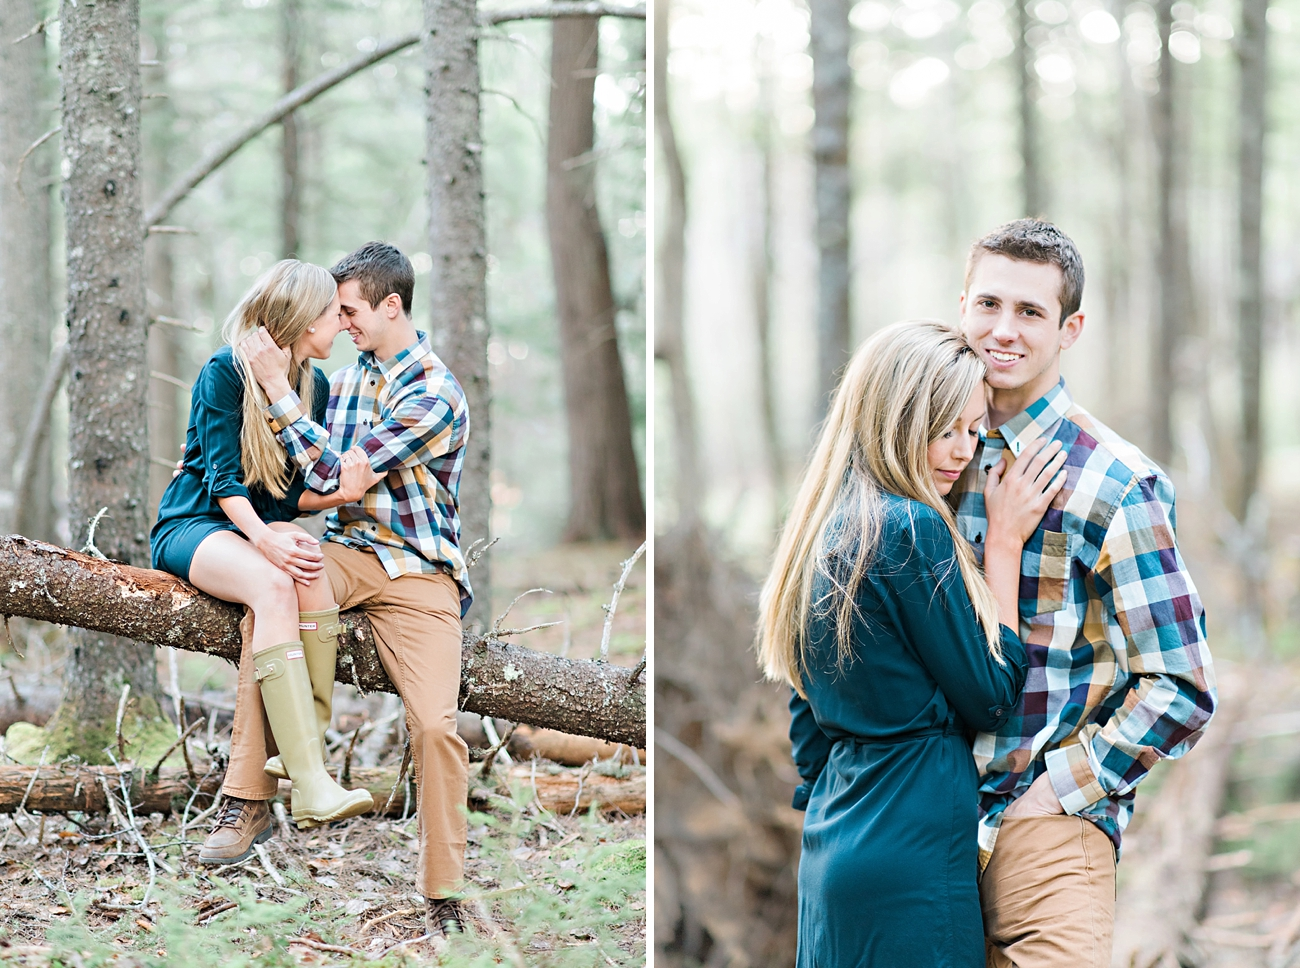 Brittany-Kriss-Engagement-Shoot047.jpg